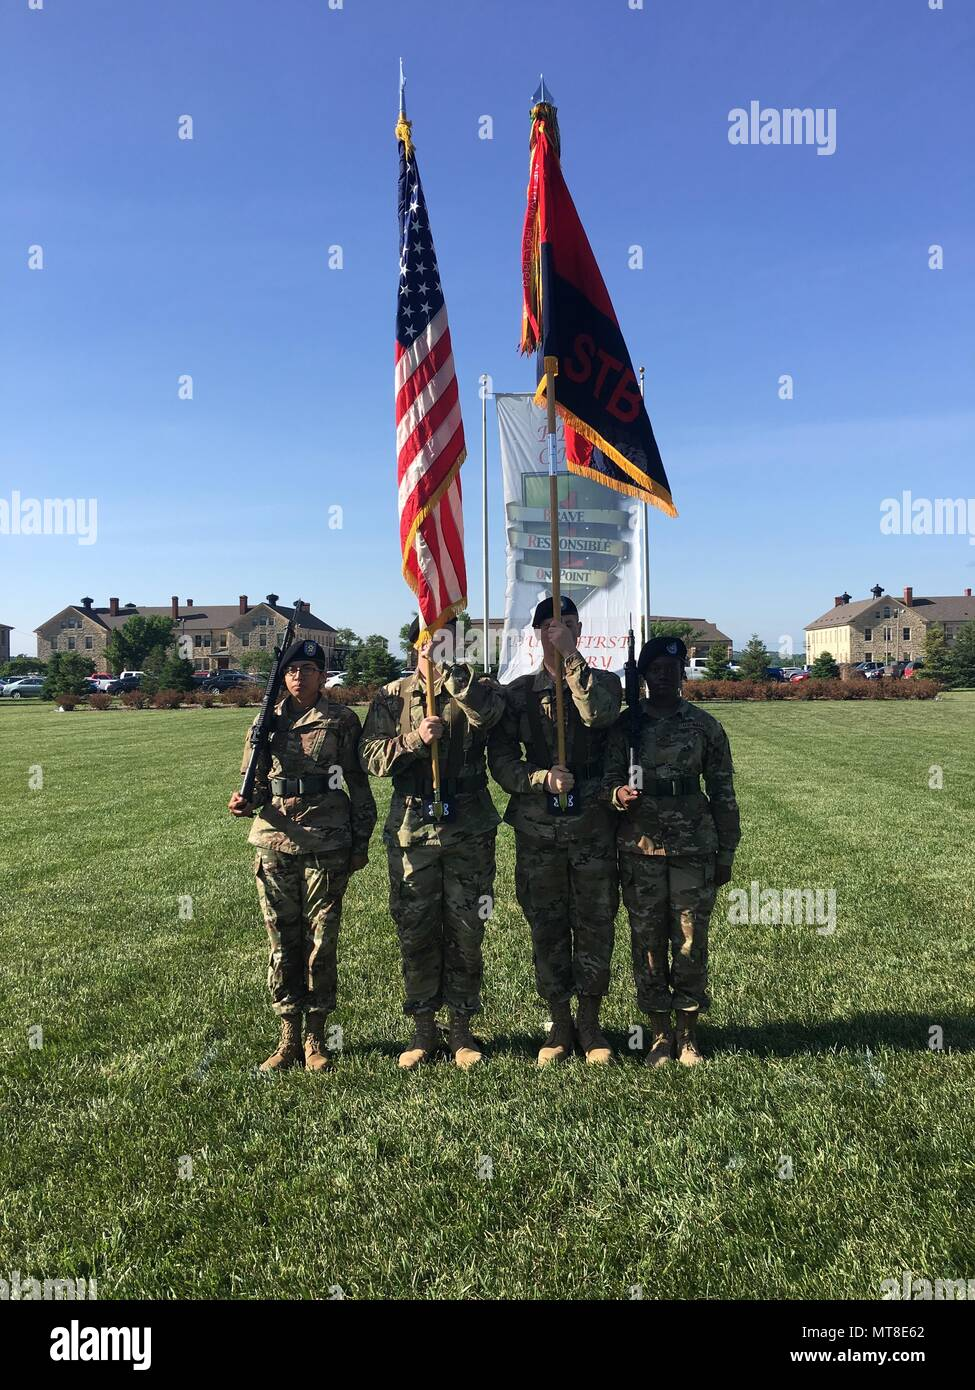 Pfc. Yaa Agyemang (far right), financial clerk 9th Financial Management Sustainment Unit, 1st Infantry Division, Sustainment Brigade, performs her duty as a rifleman of the Honor Guard during a change of command ceremony for Special Troops Battalion, Sustainment Brigade, on May 18, 2017 on Calvary Parade Field at Ft. Riley, KS. Agyemang was hand picked by the unit's Command Sgt. Maj. to perform the duty. ( Courtesy Photo) - Stock Image